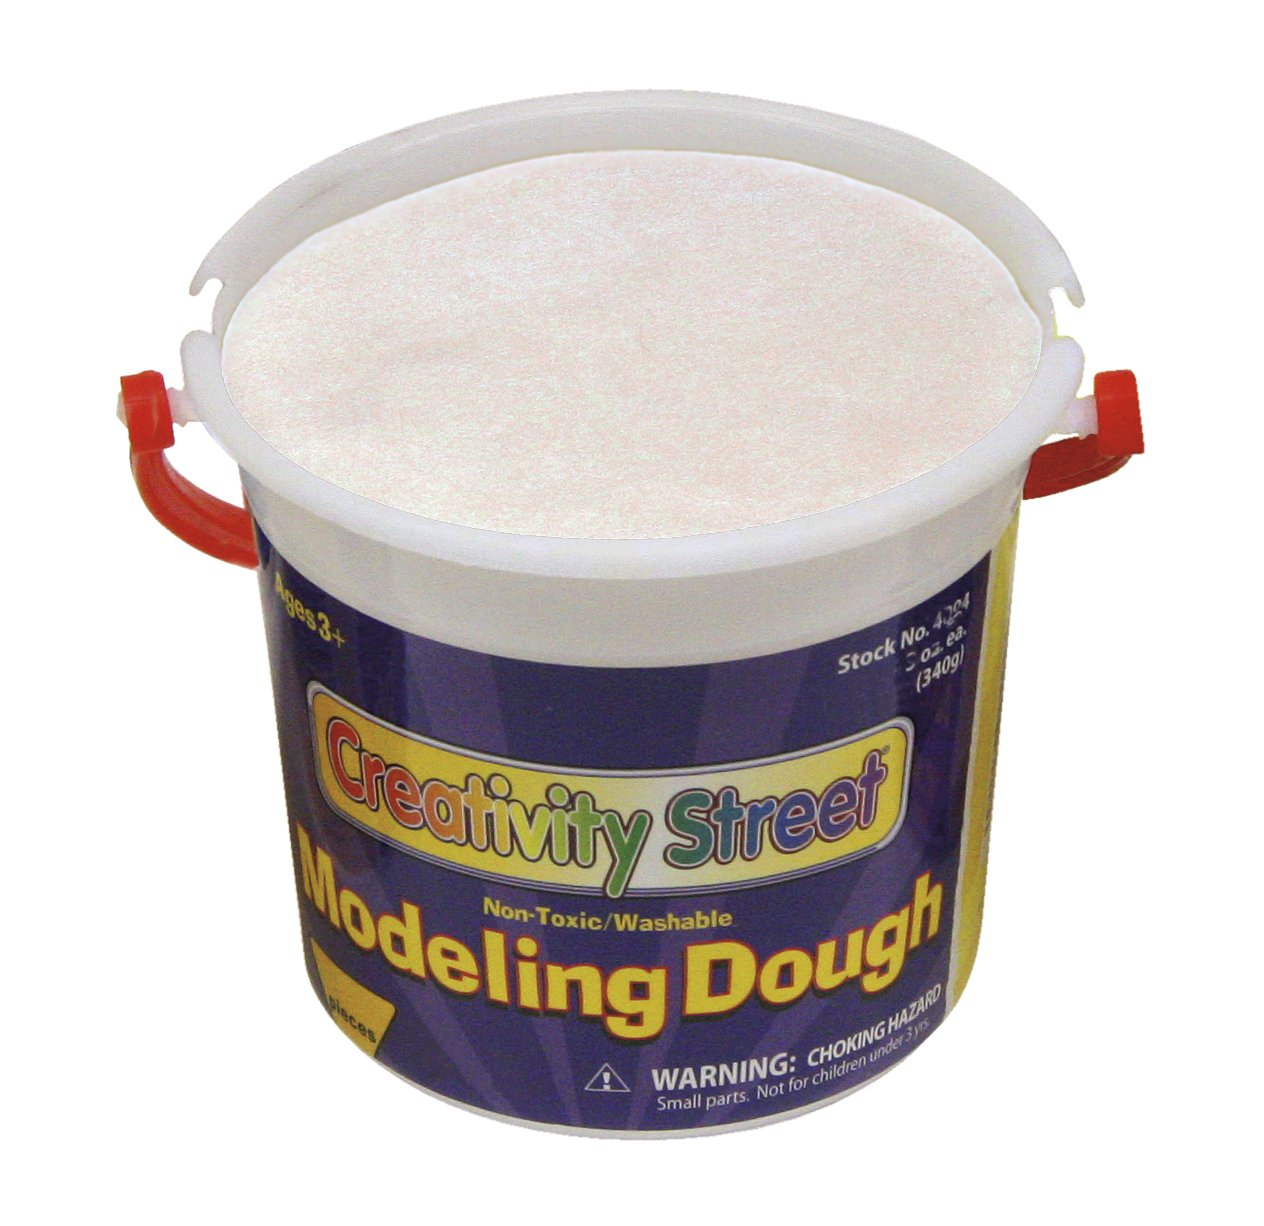 Creativity Street Modeling Dough, White, 3.3-lb. Tub (AC4069)